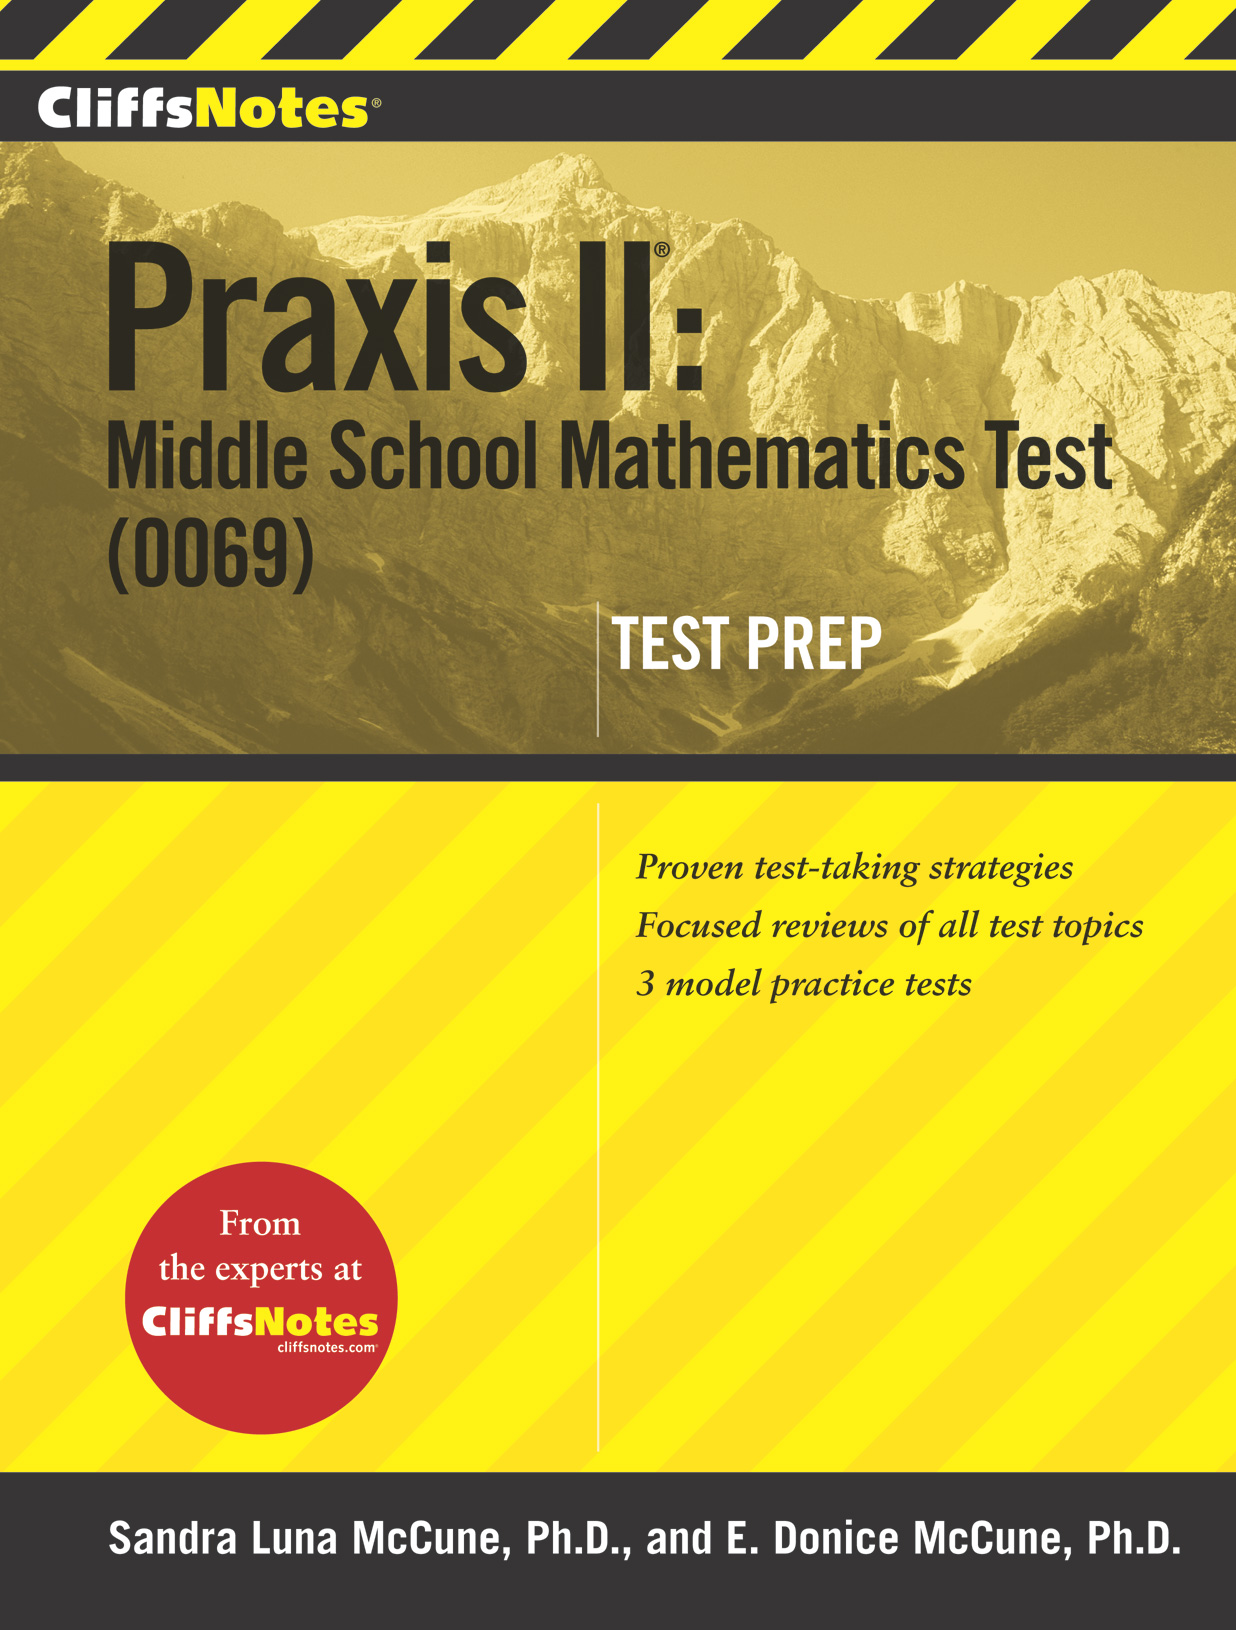 CliffsNotes Praxis II: Middle School Mathematics Test (0069) Test Prep-9780544183476